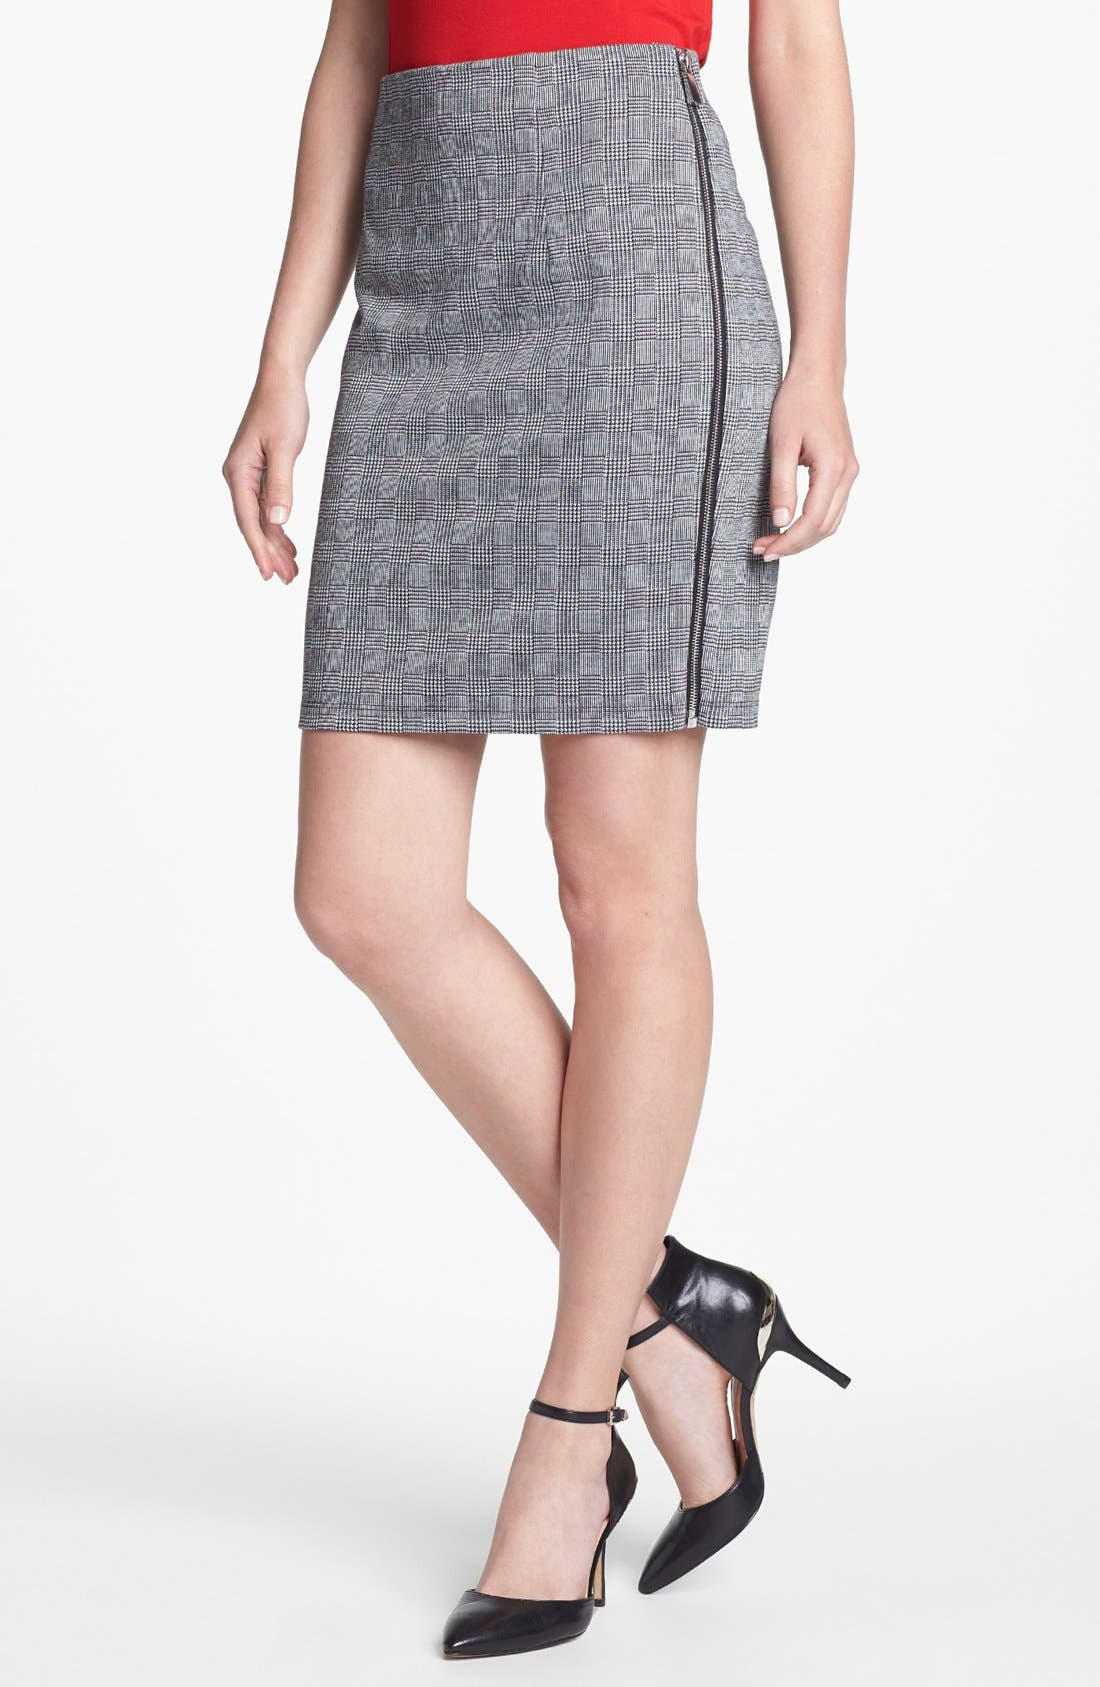 Alternate Image 1 Selected - Vince Camuto Side Zip Glen Plaid Pencil Skirt (Nordstrom Exclusive)